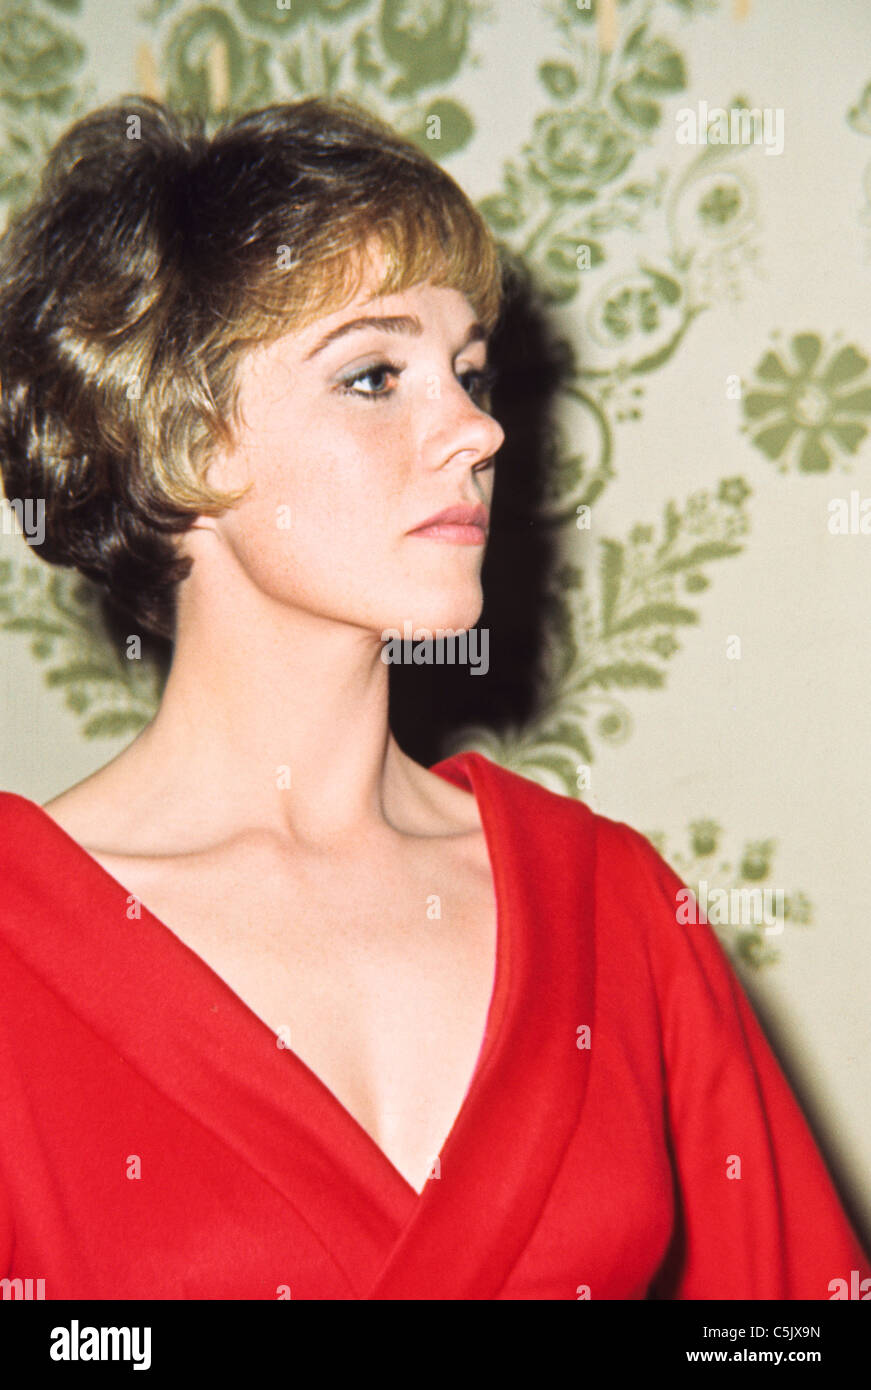 julie andrews,1960 - Stock Image